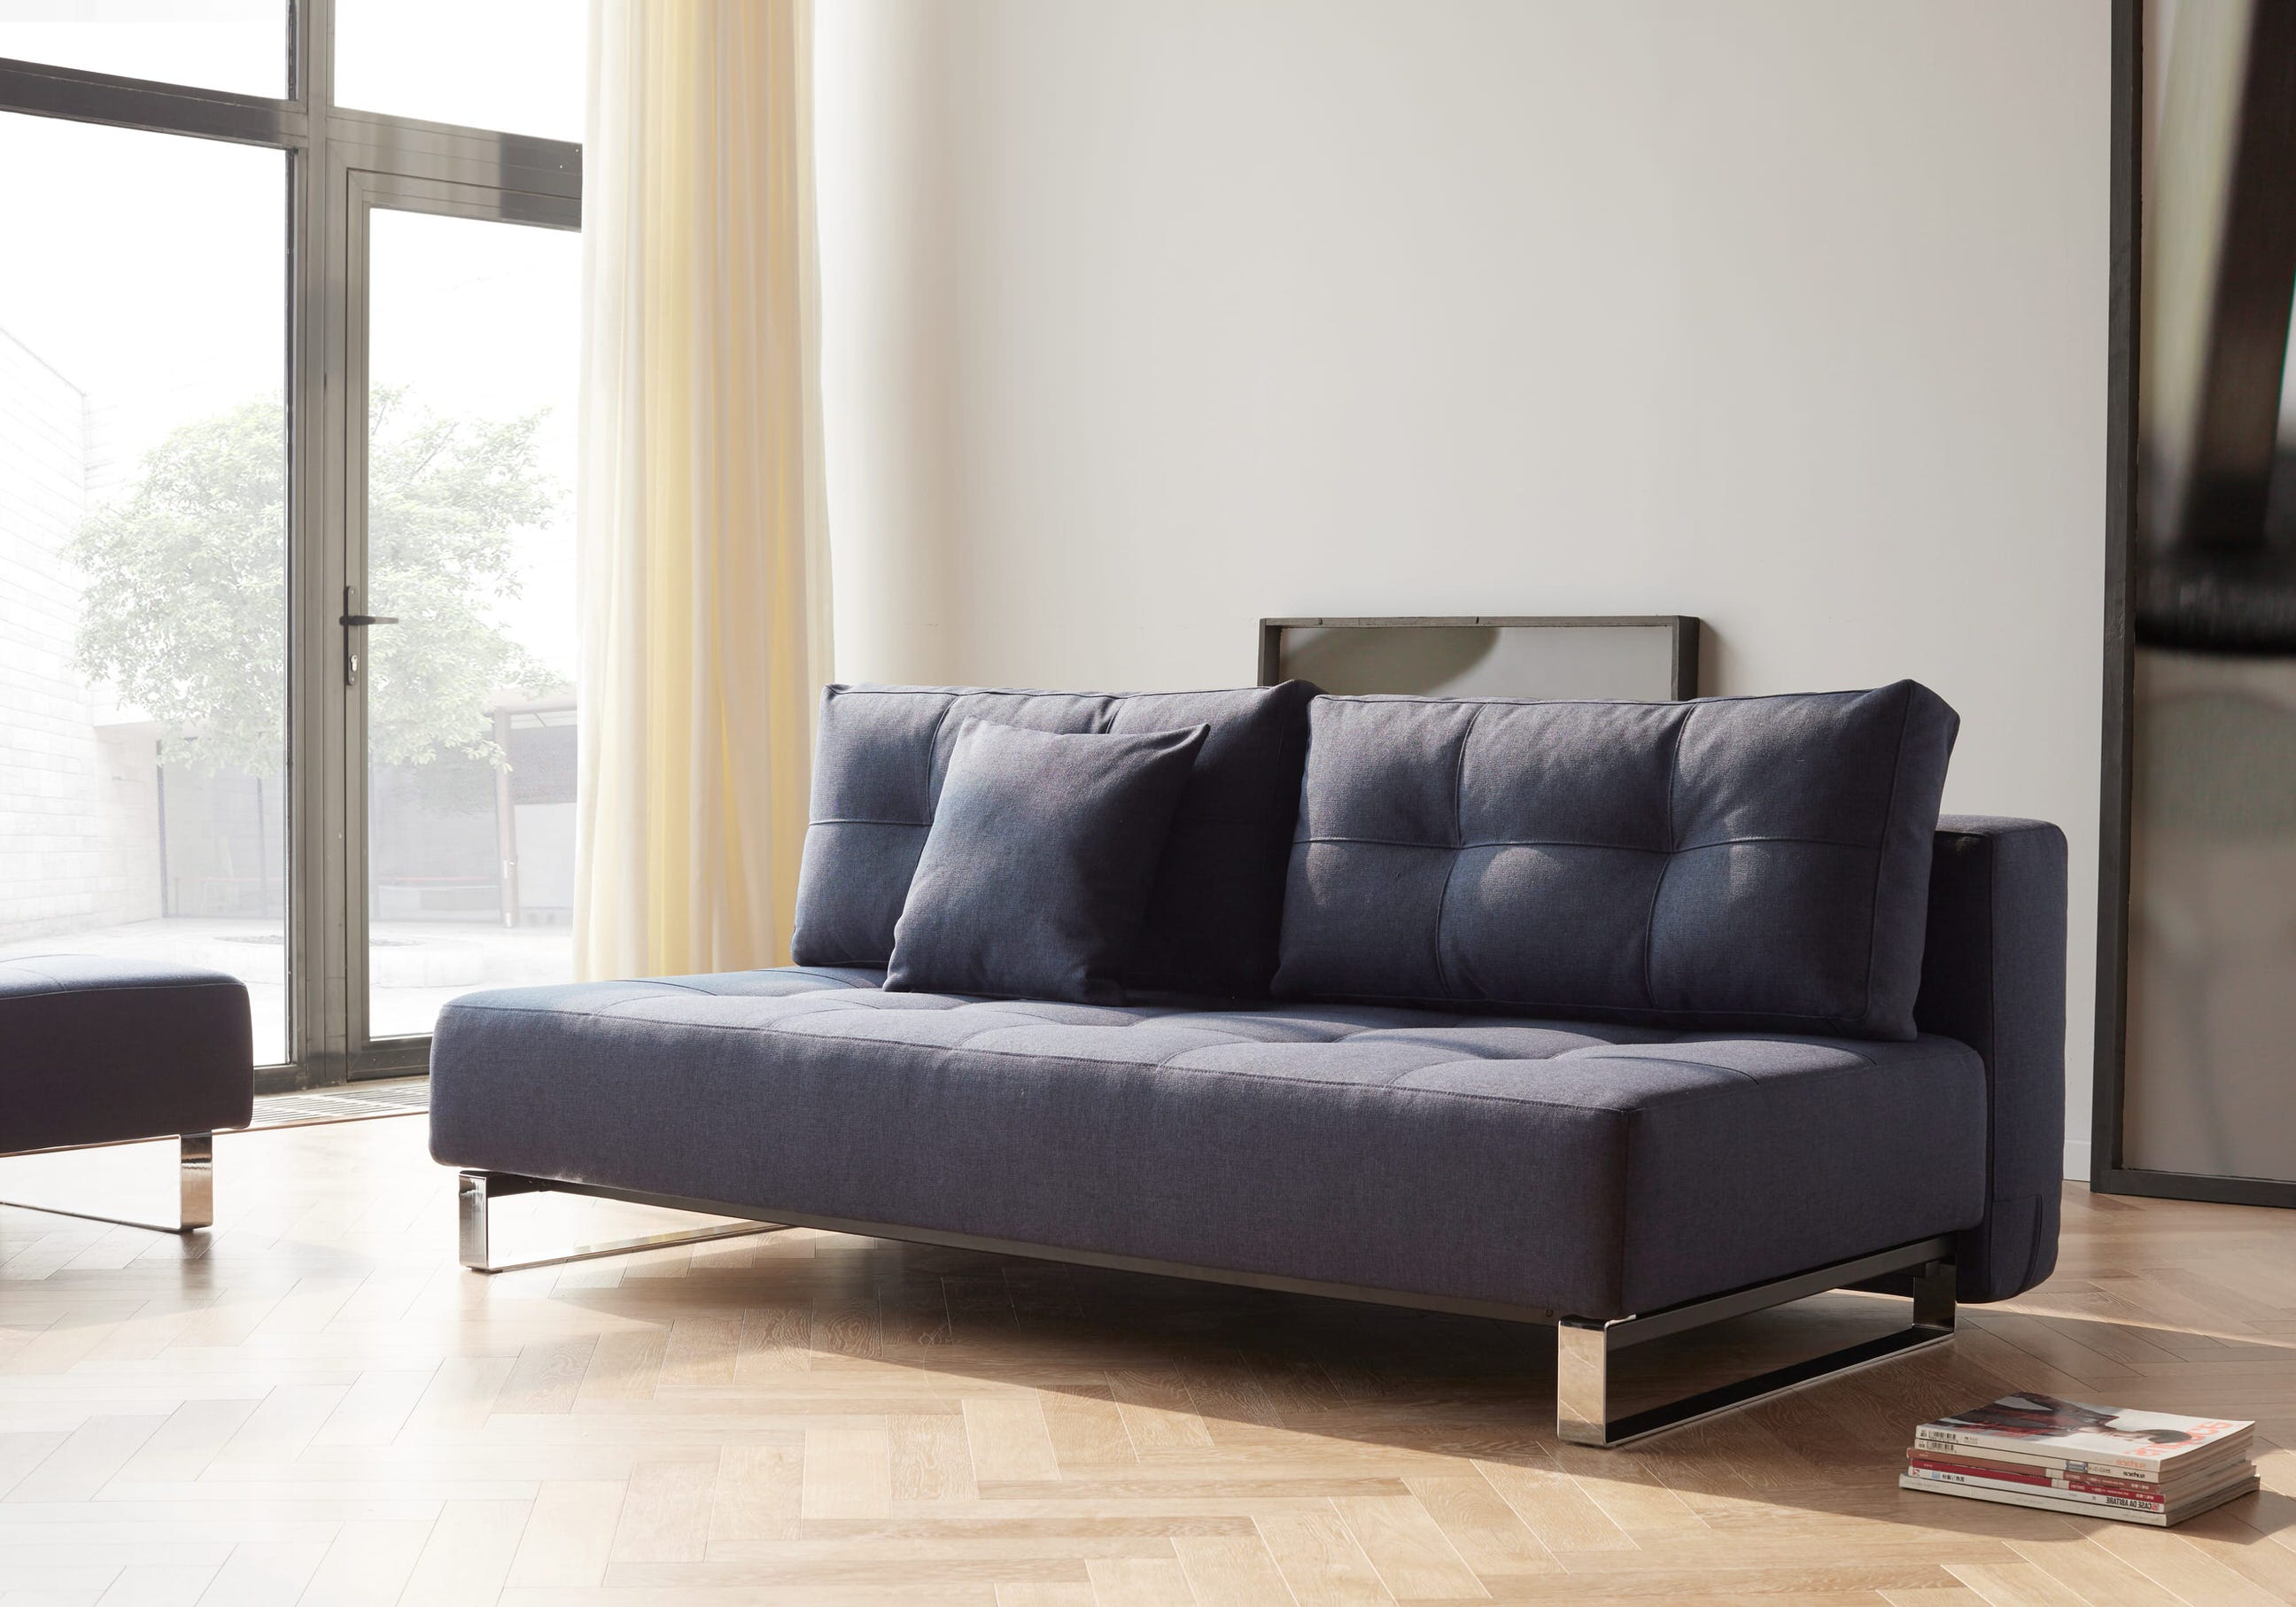 Large Sofa Beds Everyday Use Supremax Deluxe Excess Sofa Bed Queen Size Mixed Dance Blue By Innovation